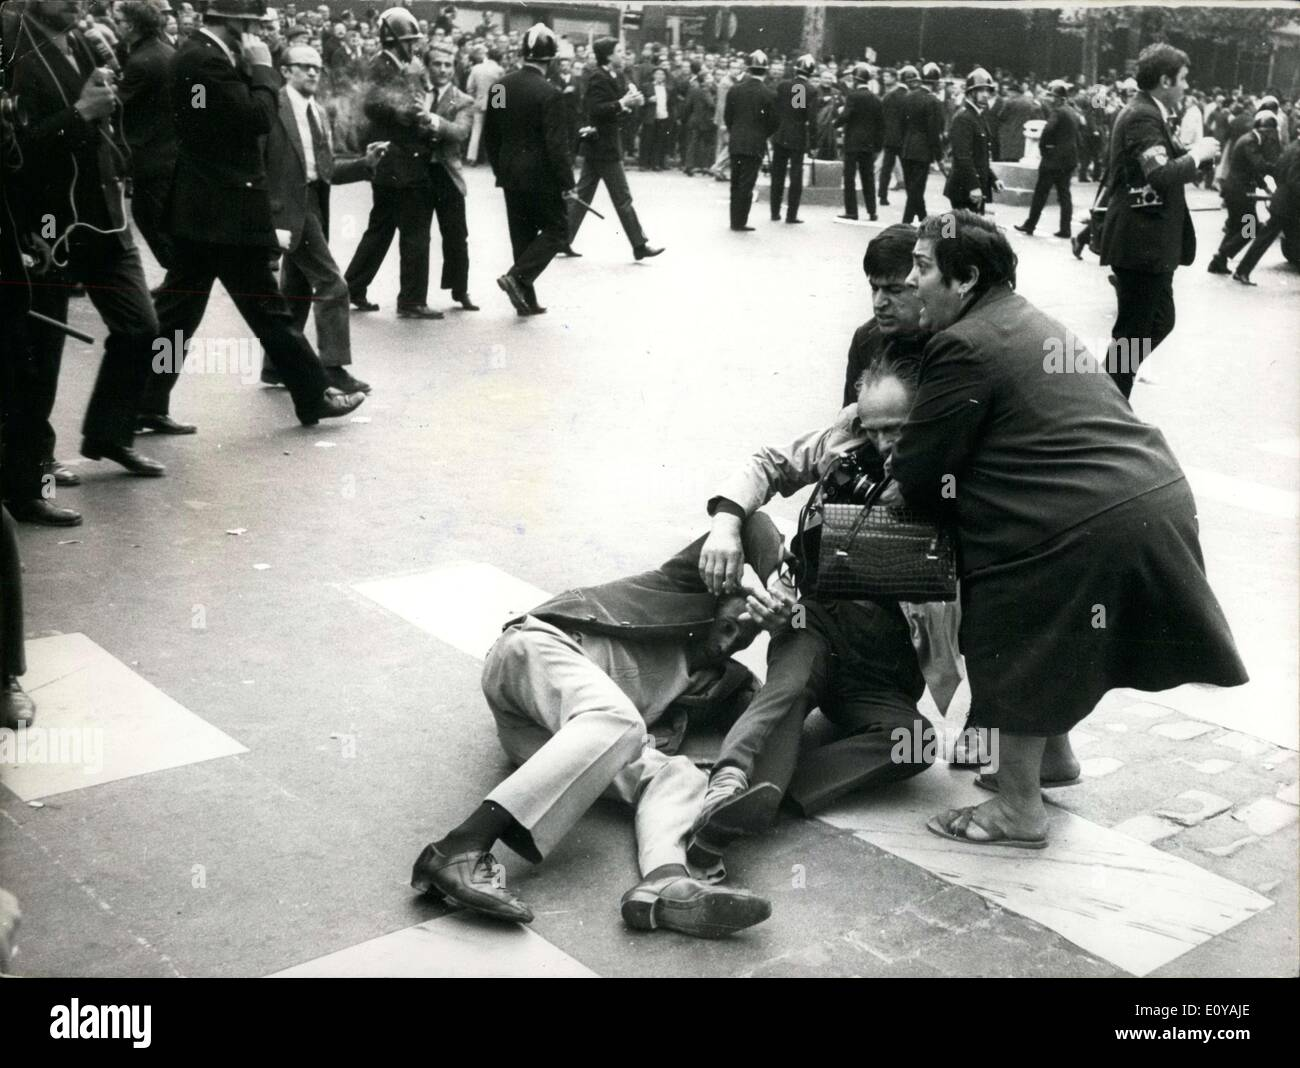 Sep. 13, 1969 - Two Injured Protest at Meeting Merchants Artisans Prince Park APRESS.c - Stock Image